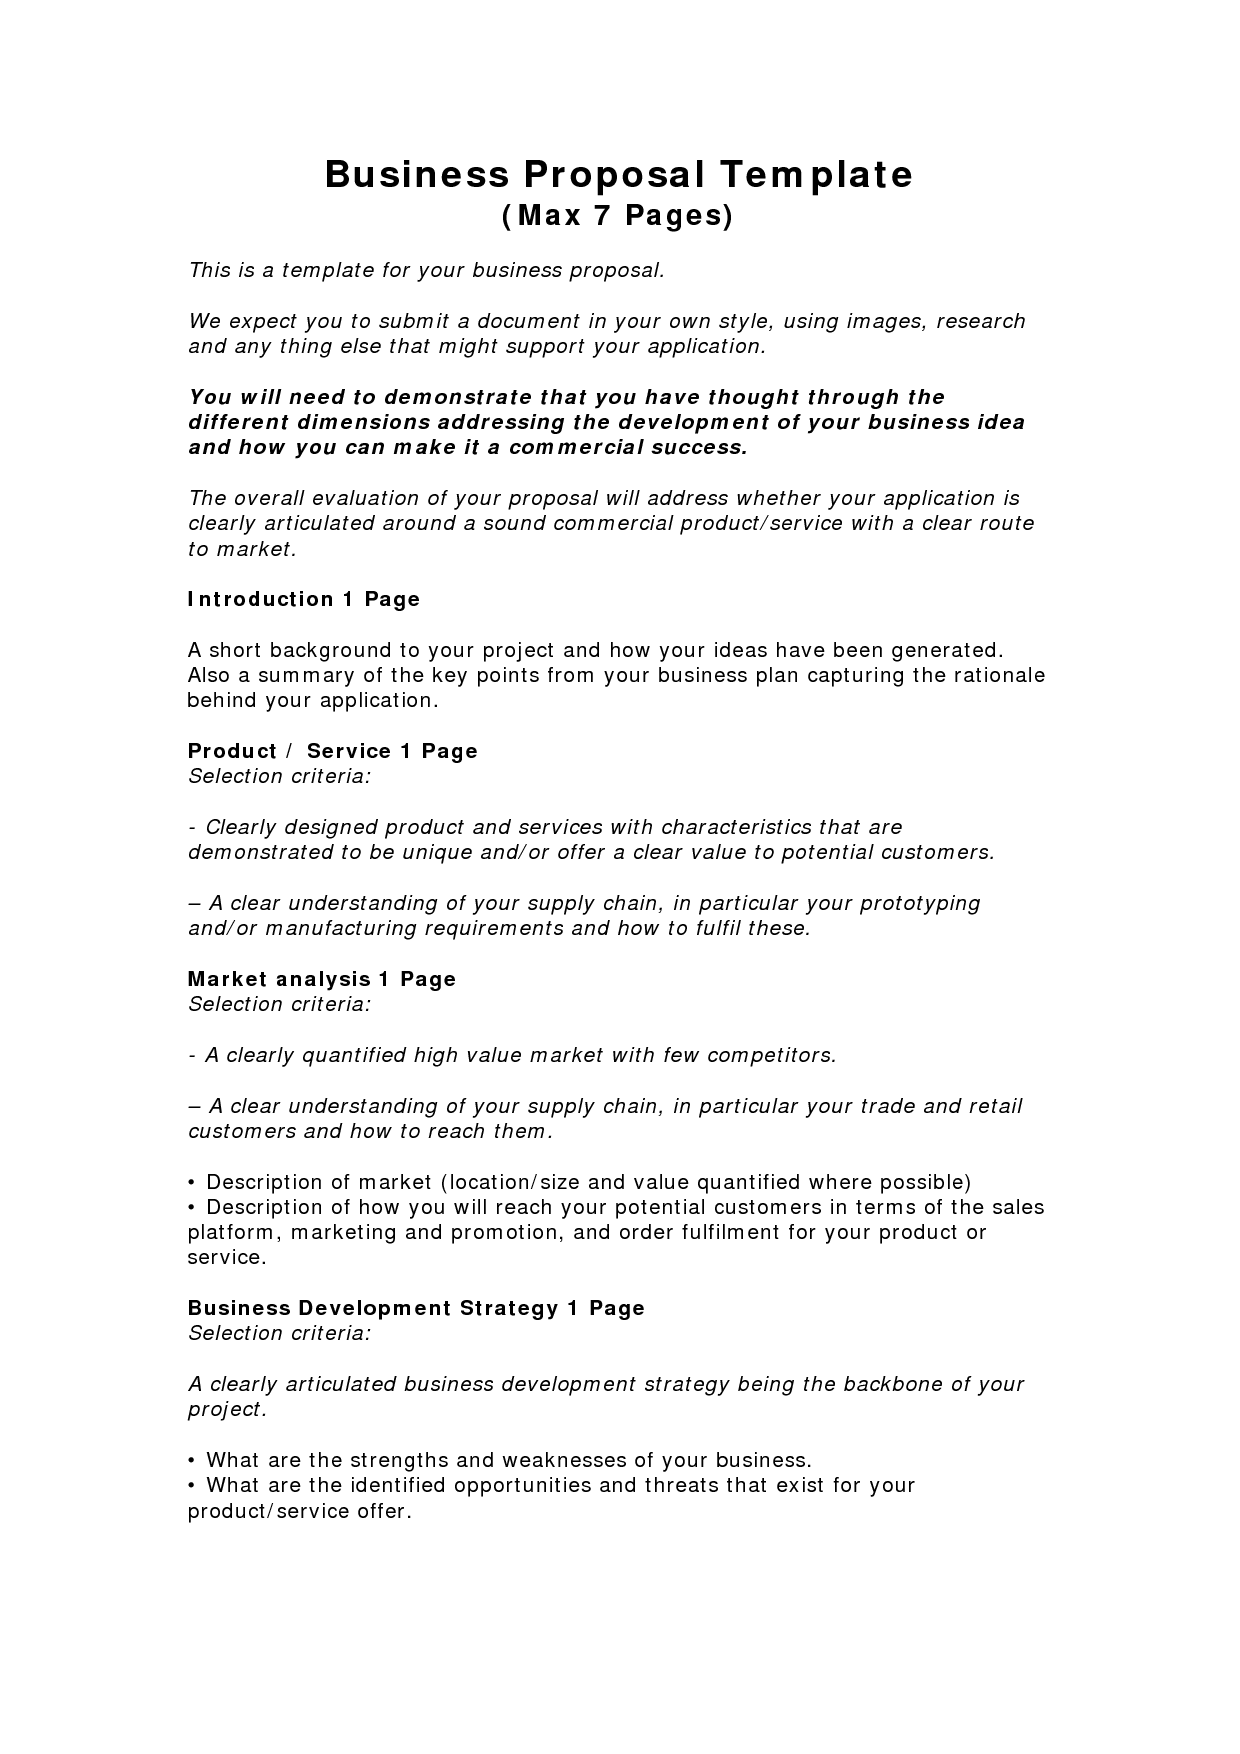 Short list sample letter valid business proposal letter format.